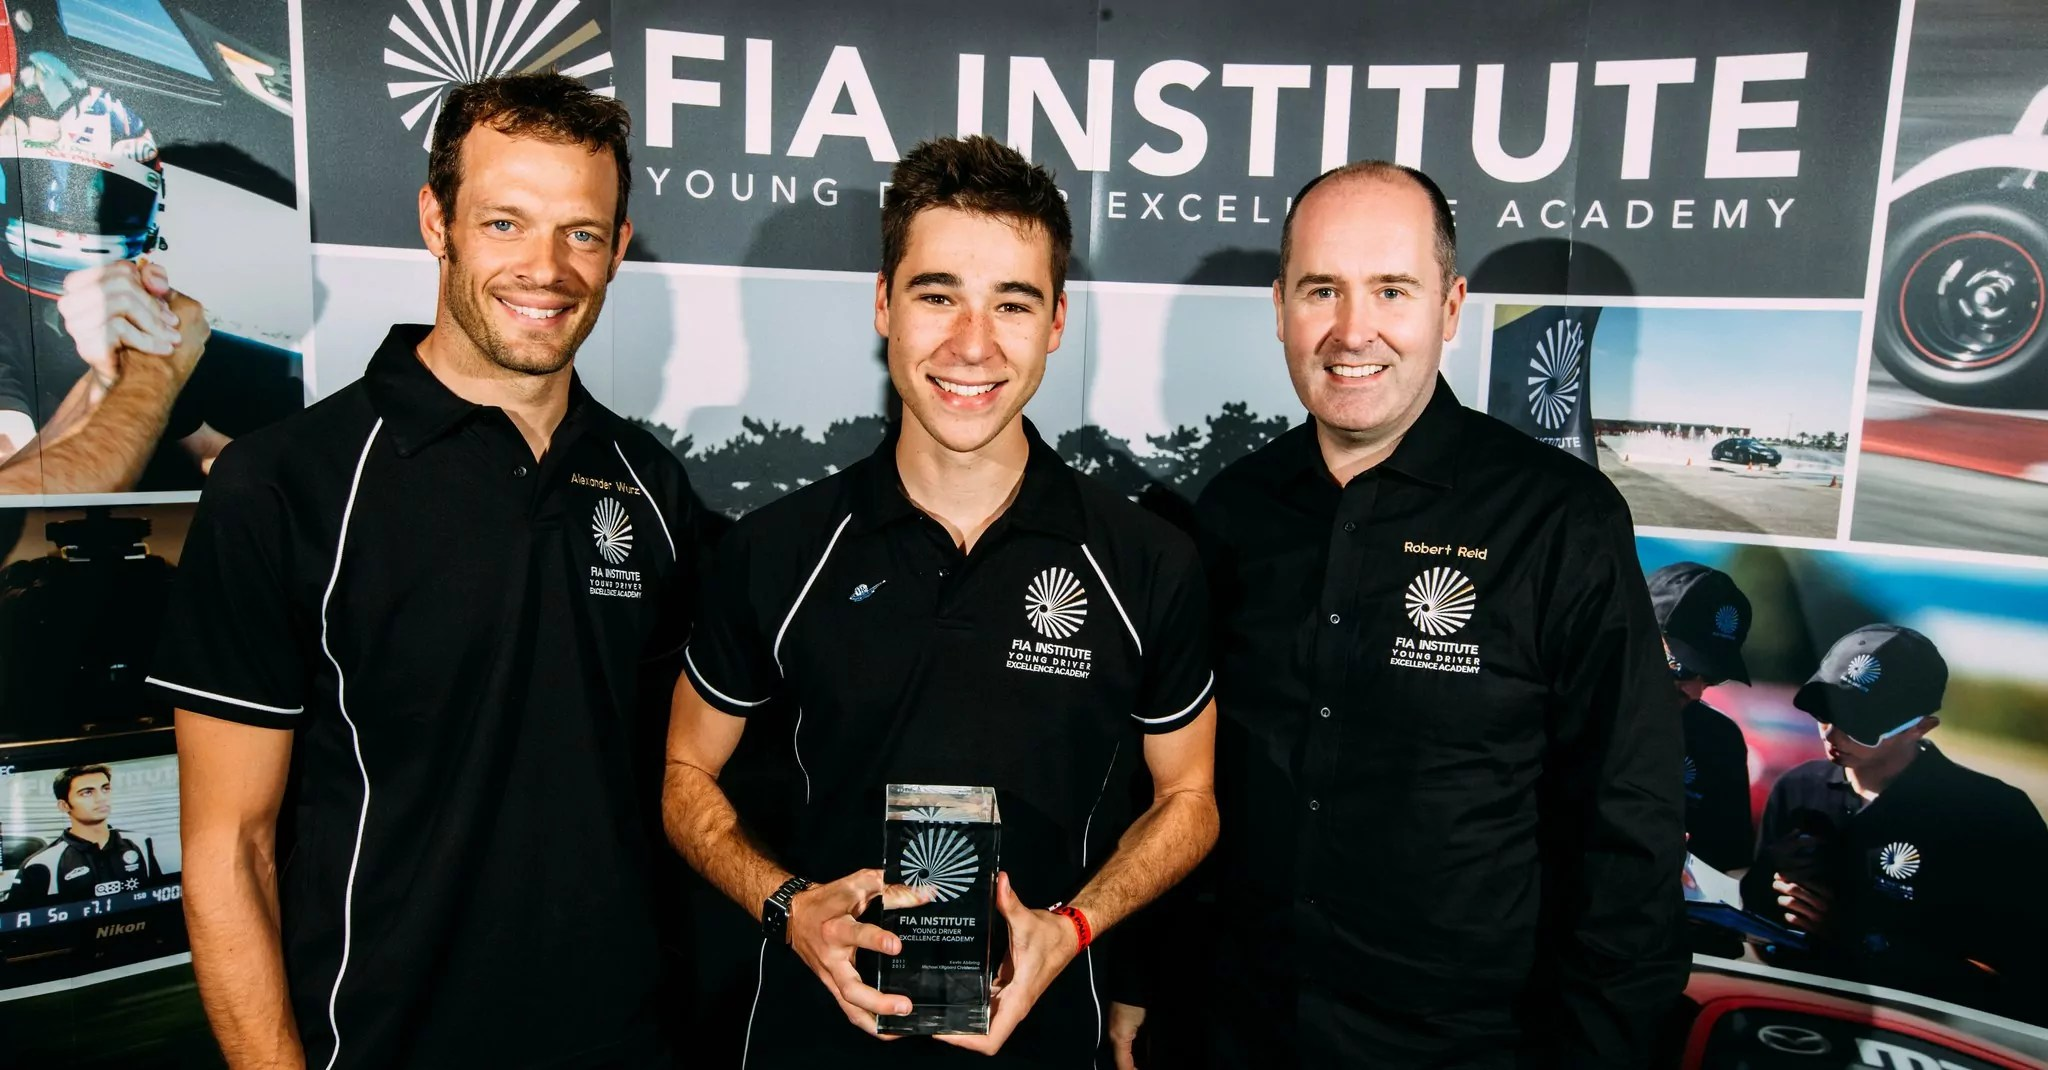 Van der Linde Wins International Elite FIA Academy